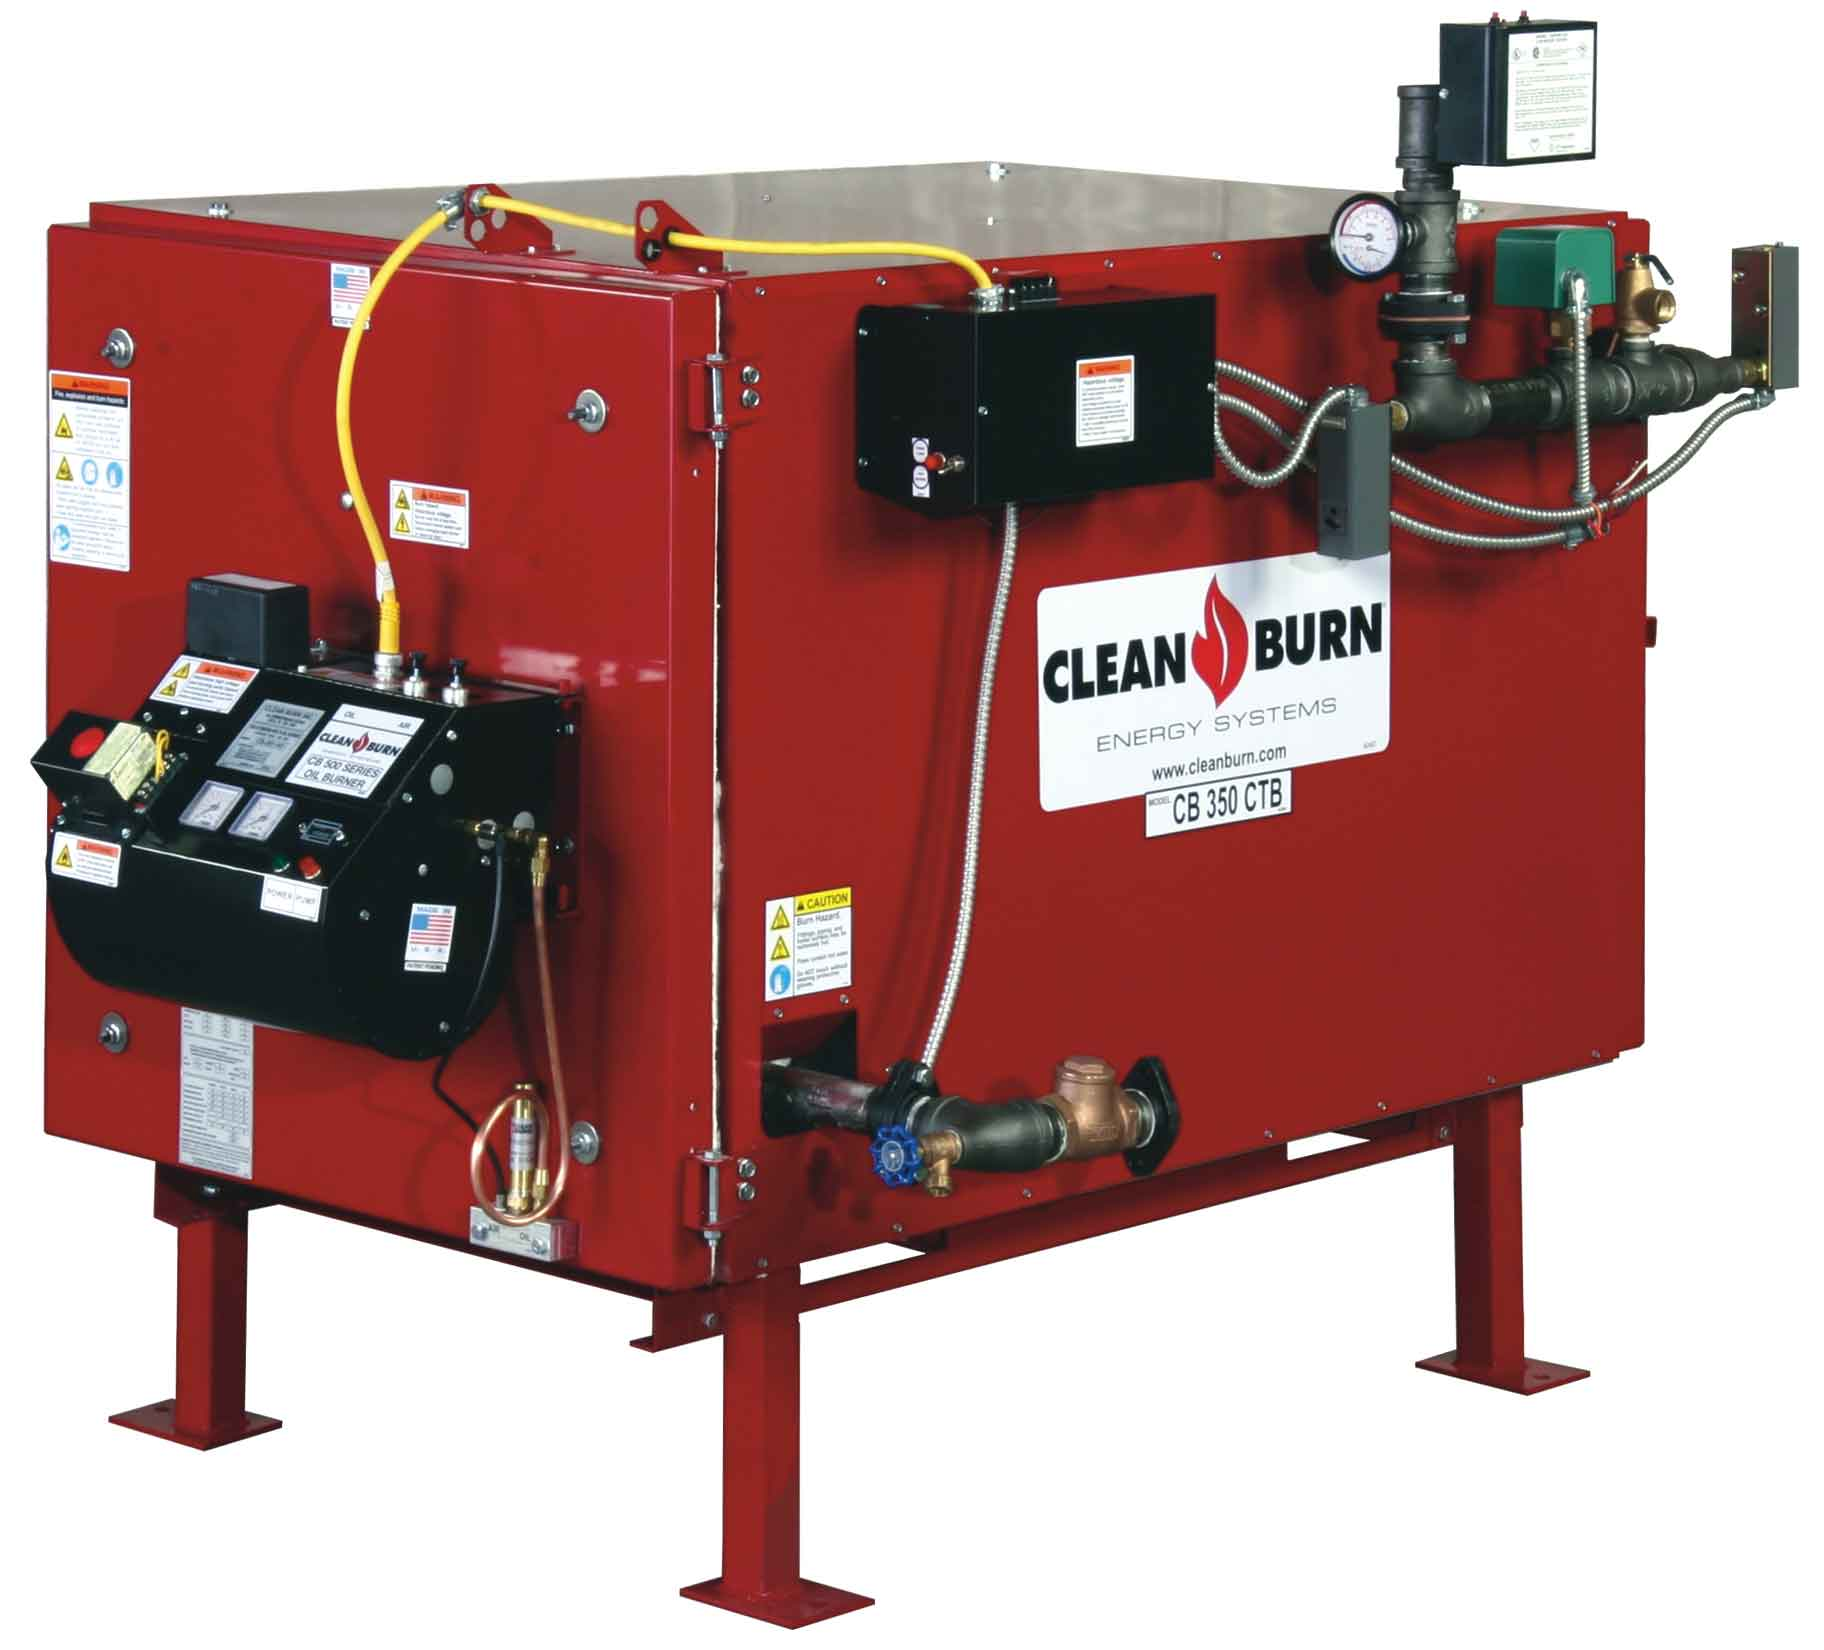 Clean Burn CB-350-CTB Waste Oil Boiler